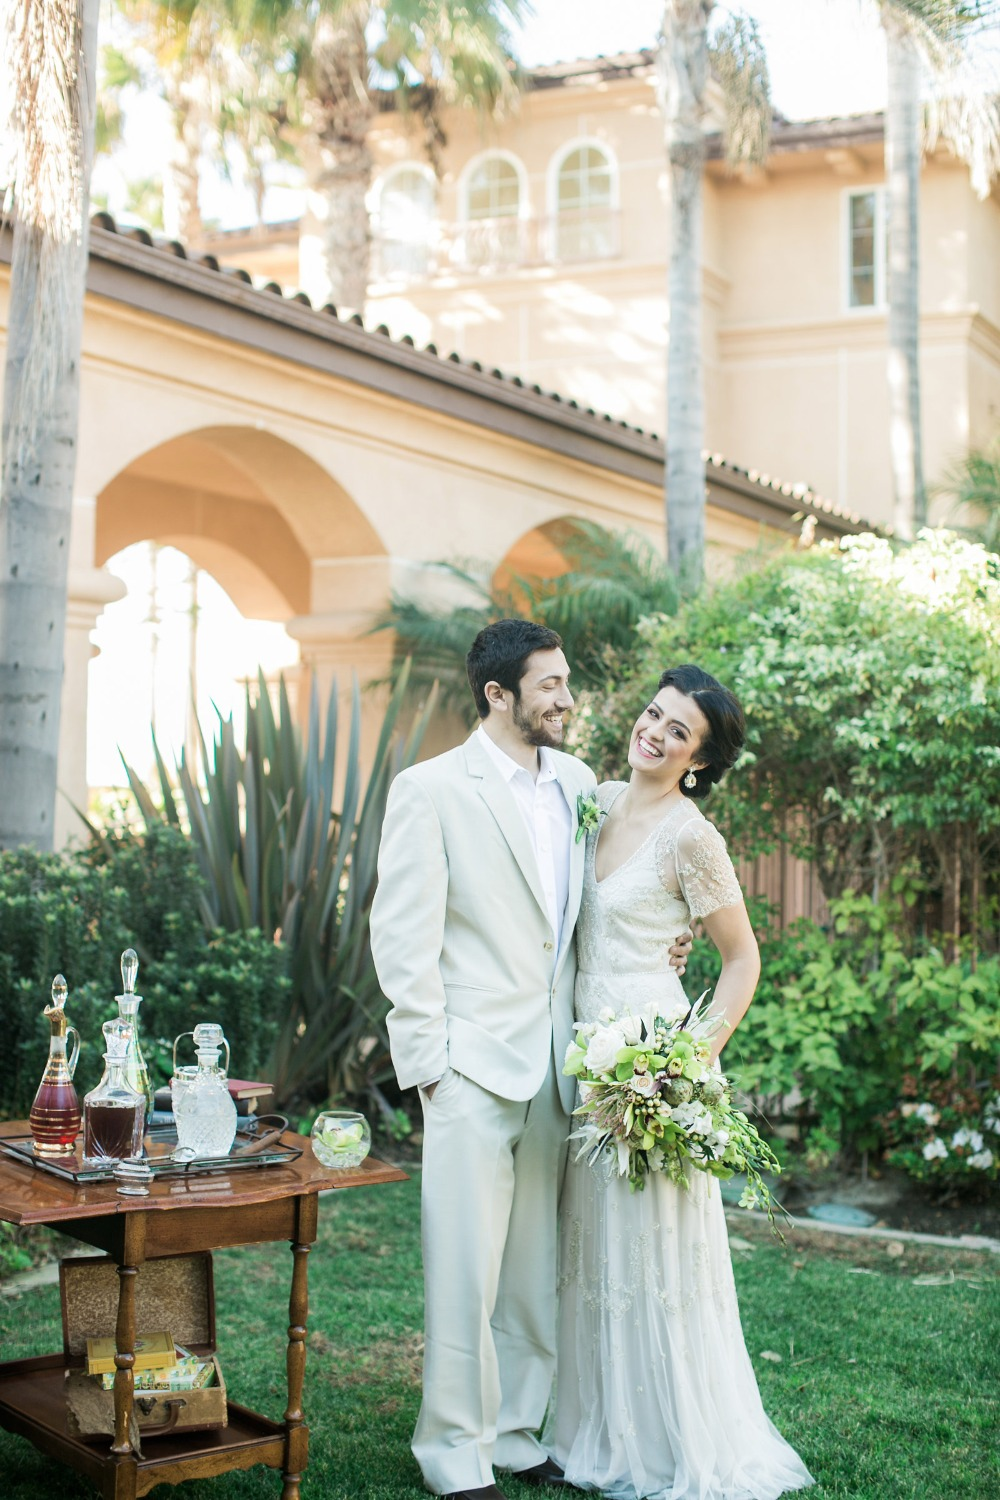 Havana Cuba inspired wedding ideas